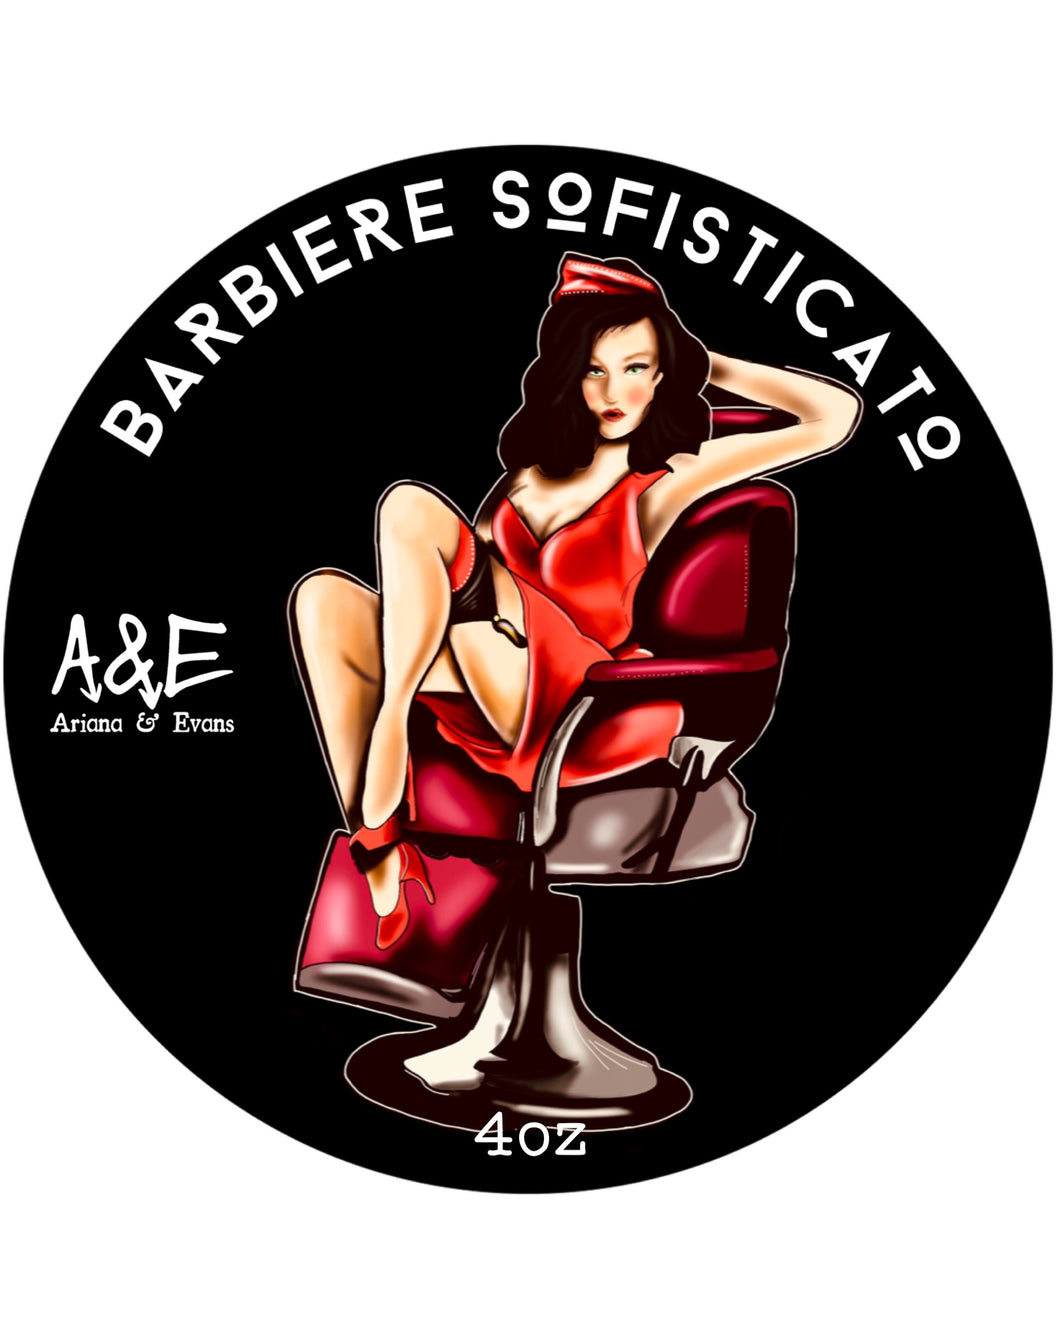 Barbiere Sofisticato Shaving Soap